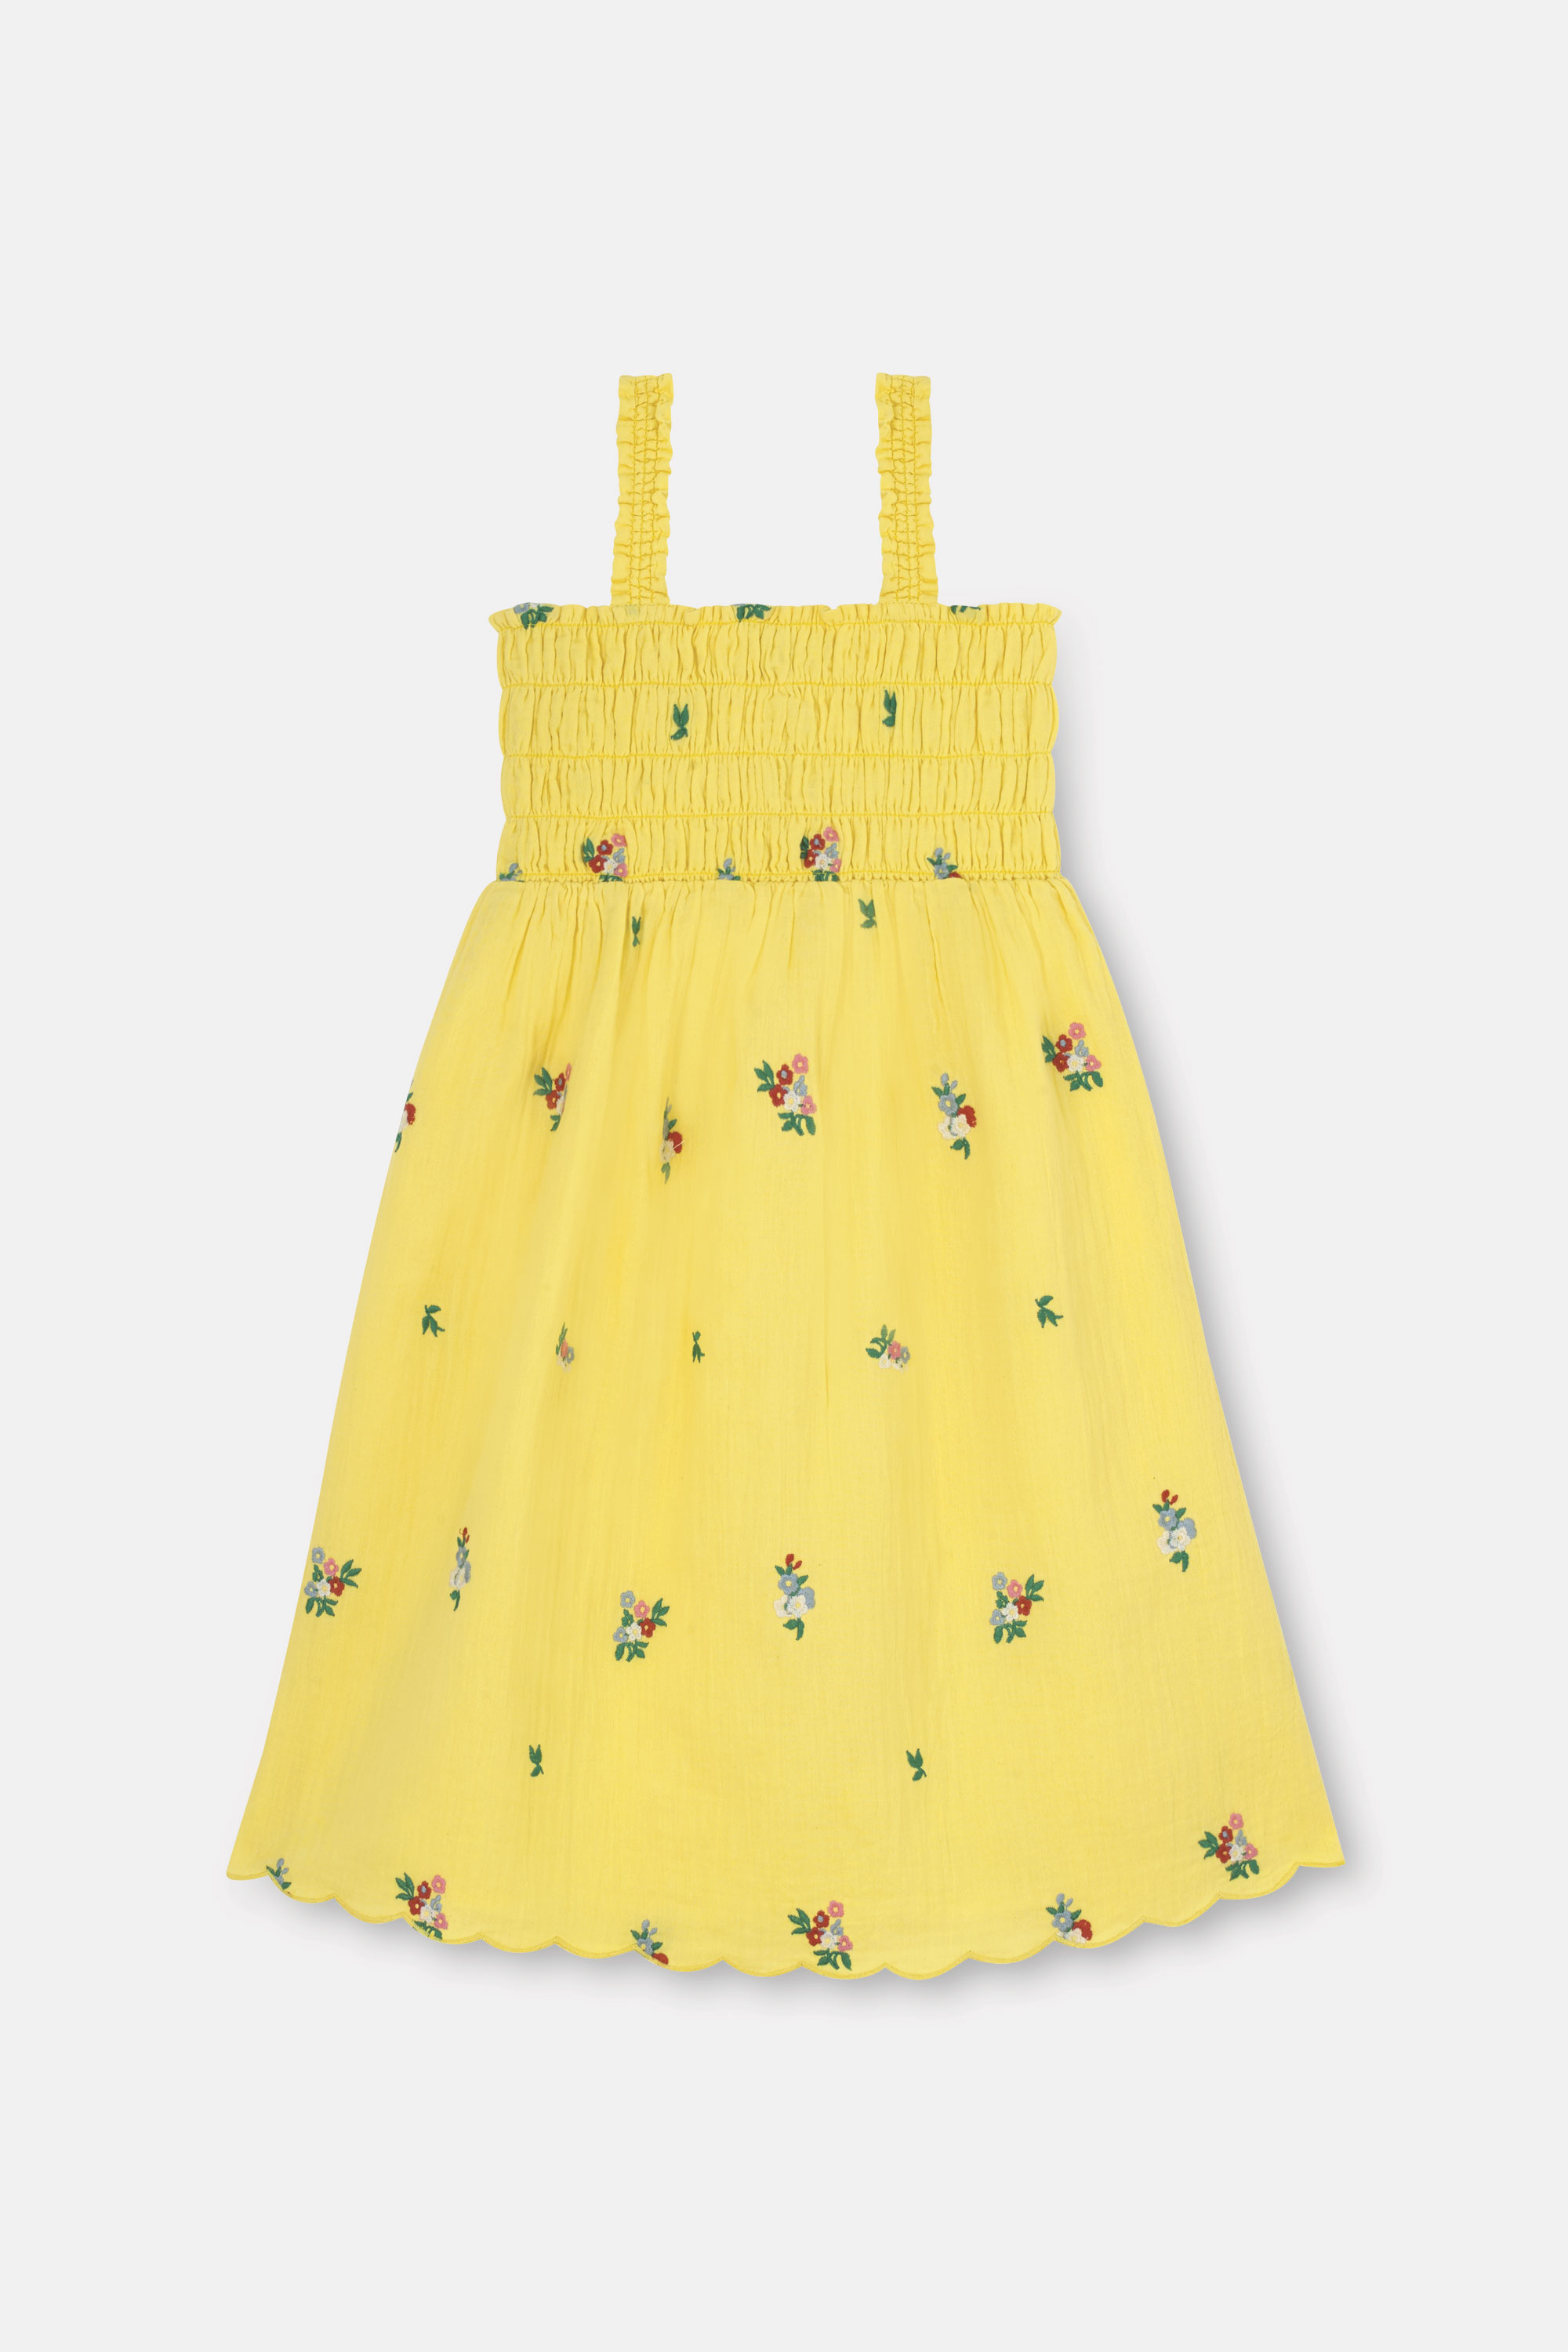 Cath Kidston Spaced Summer Floral Shirred Midi Dress in Yellow, 2-3 yr